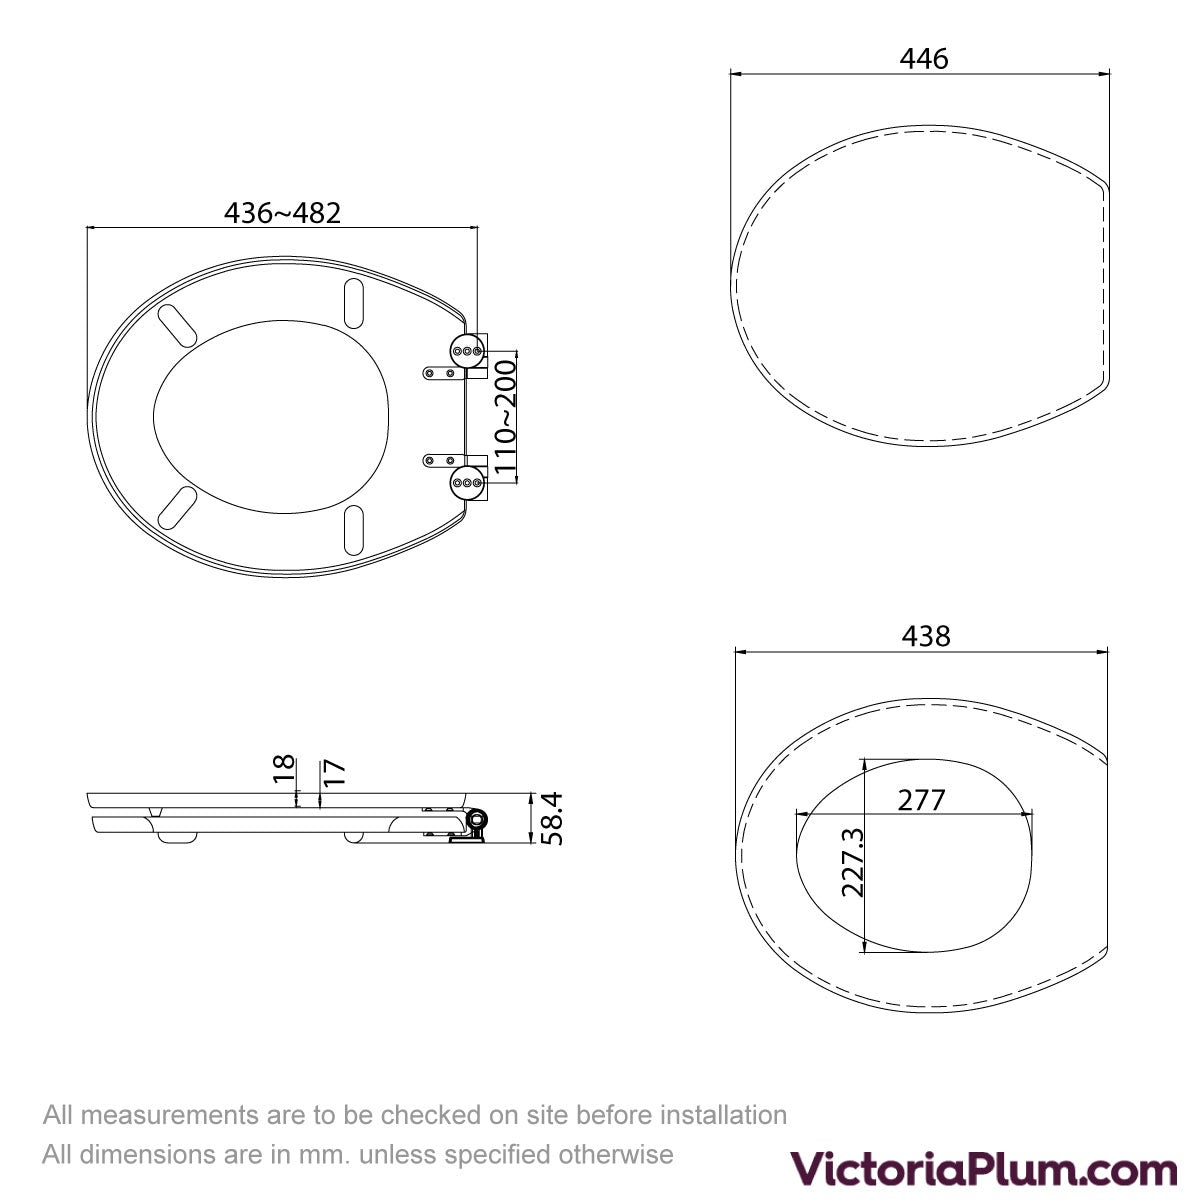 Dimensions for Charcoal grey shine acrylic toilet seat with soft close quick release hinge